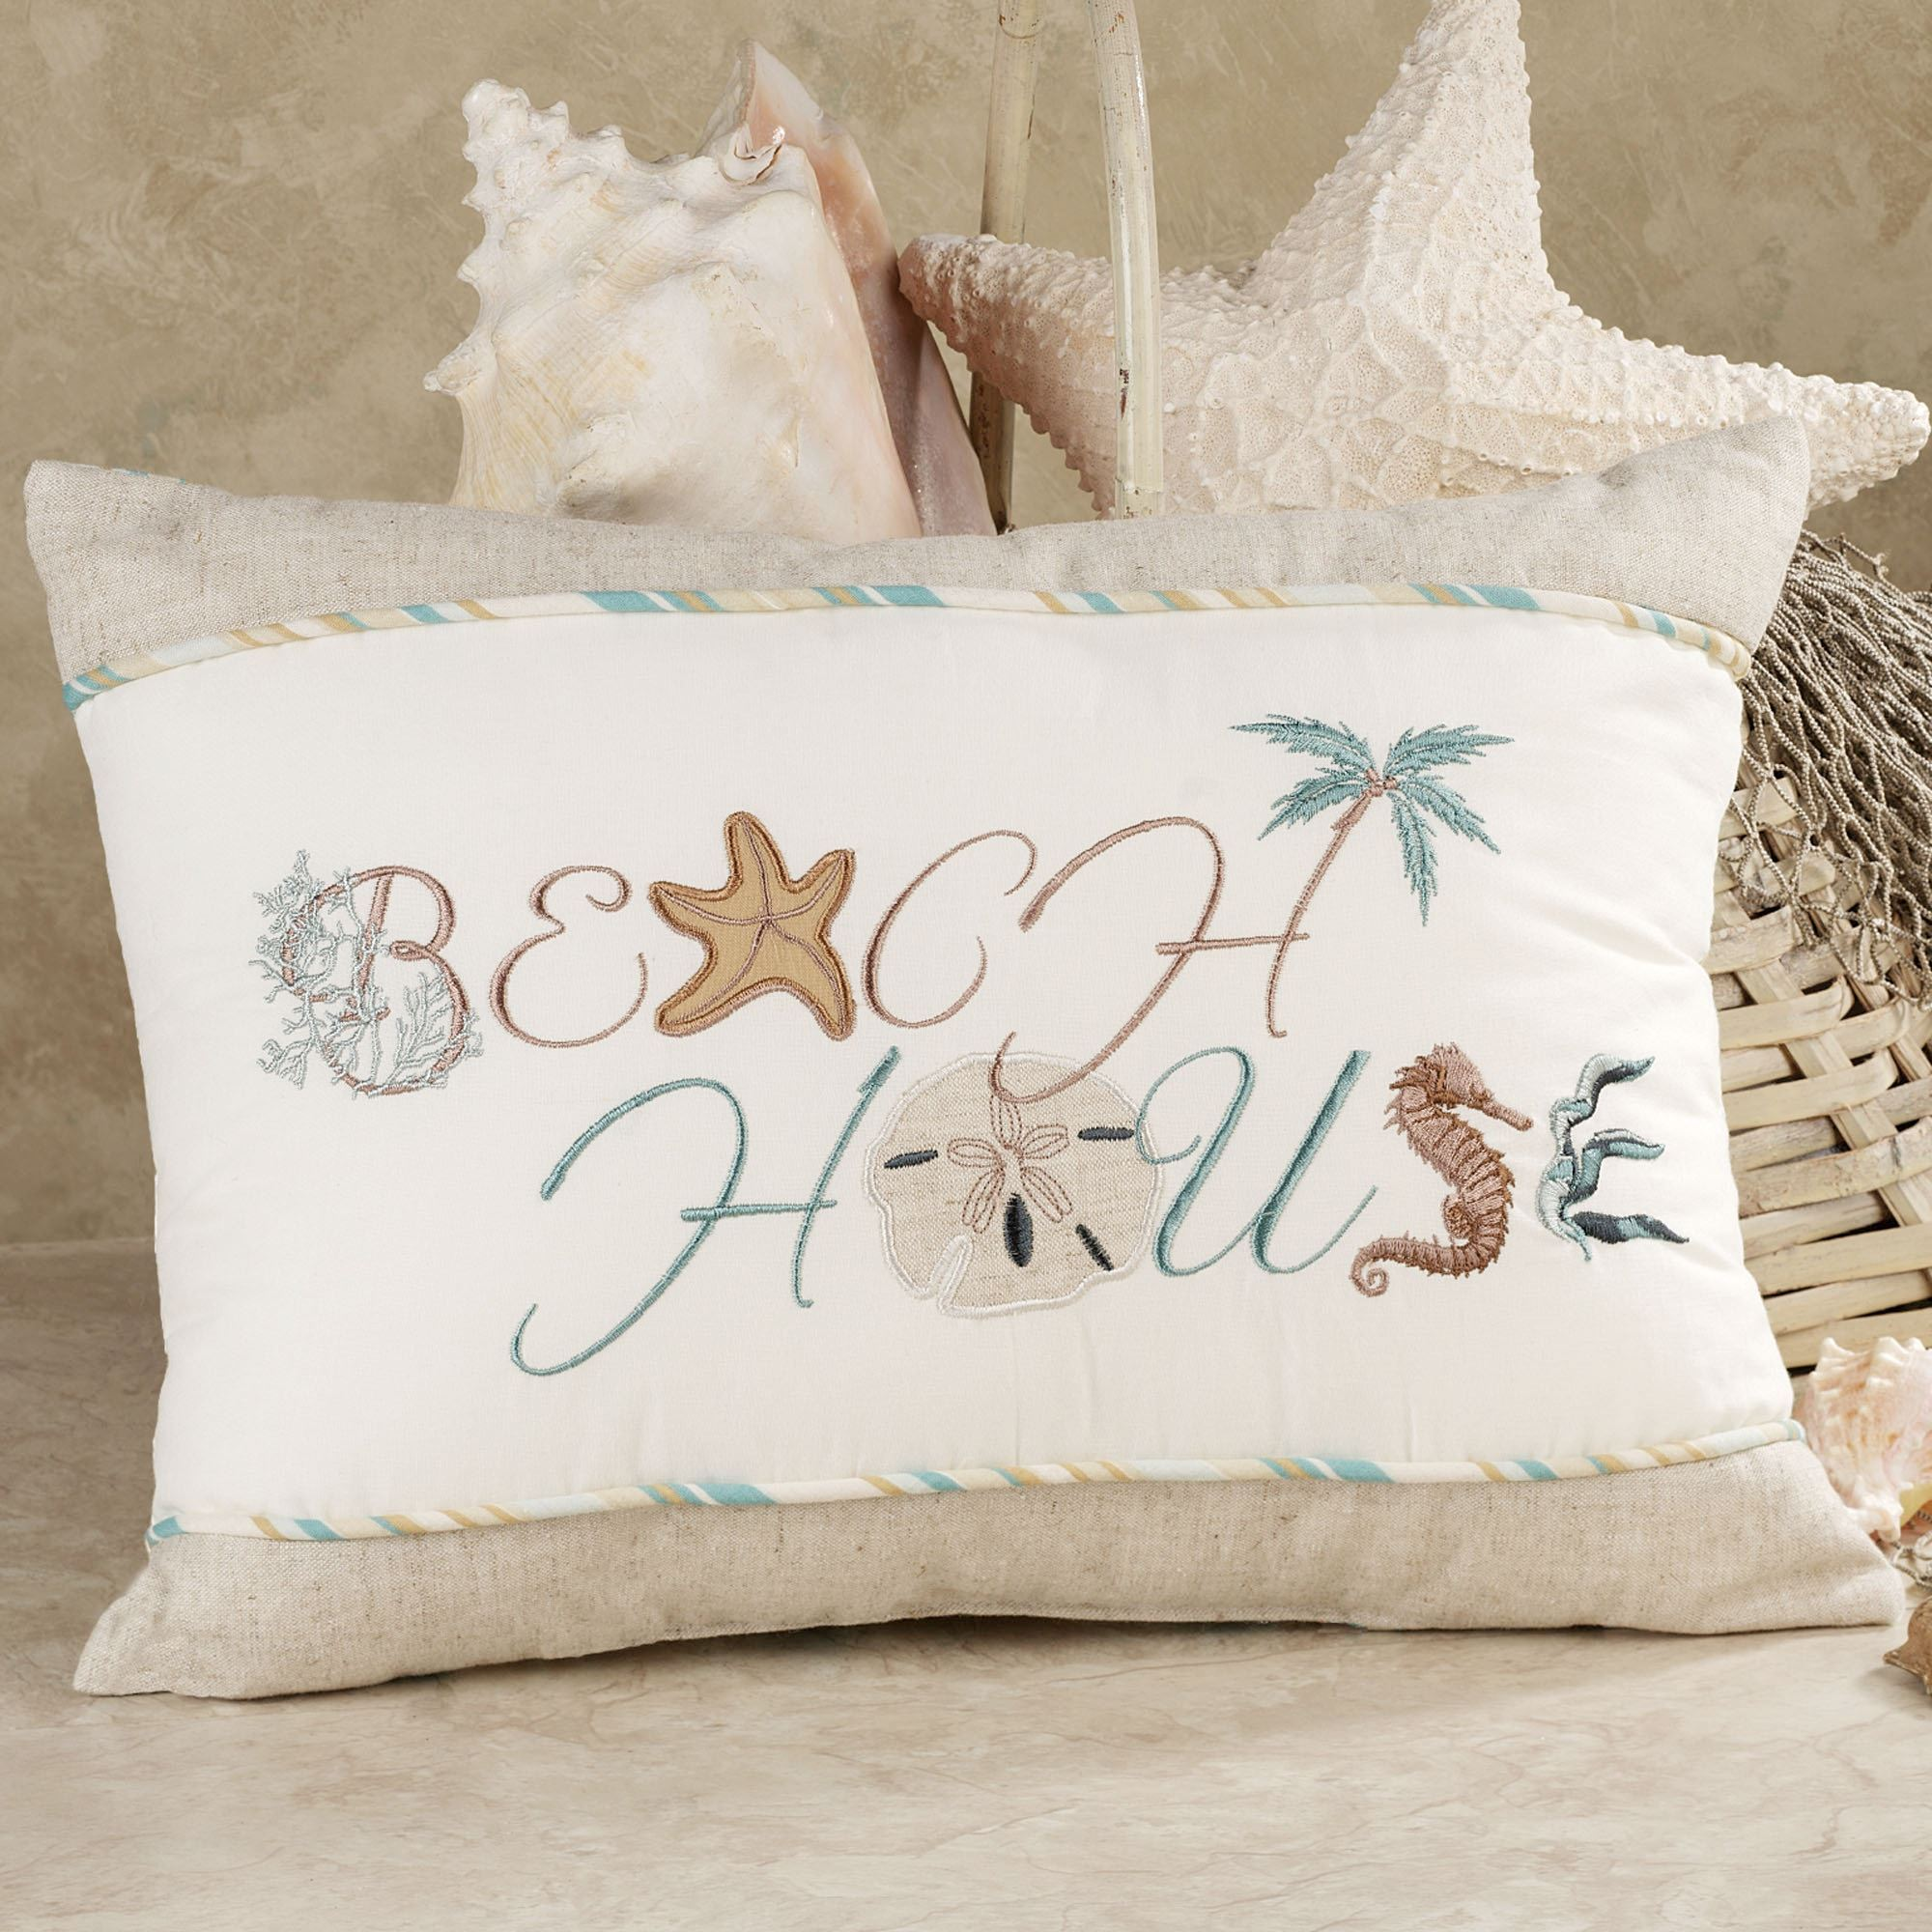 beach mahli pillow pillows